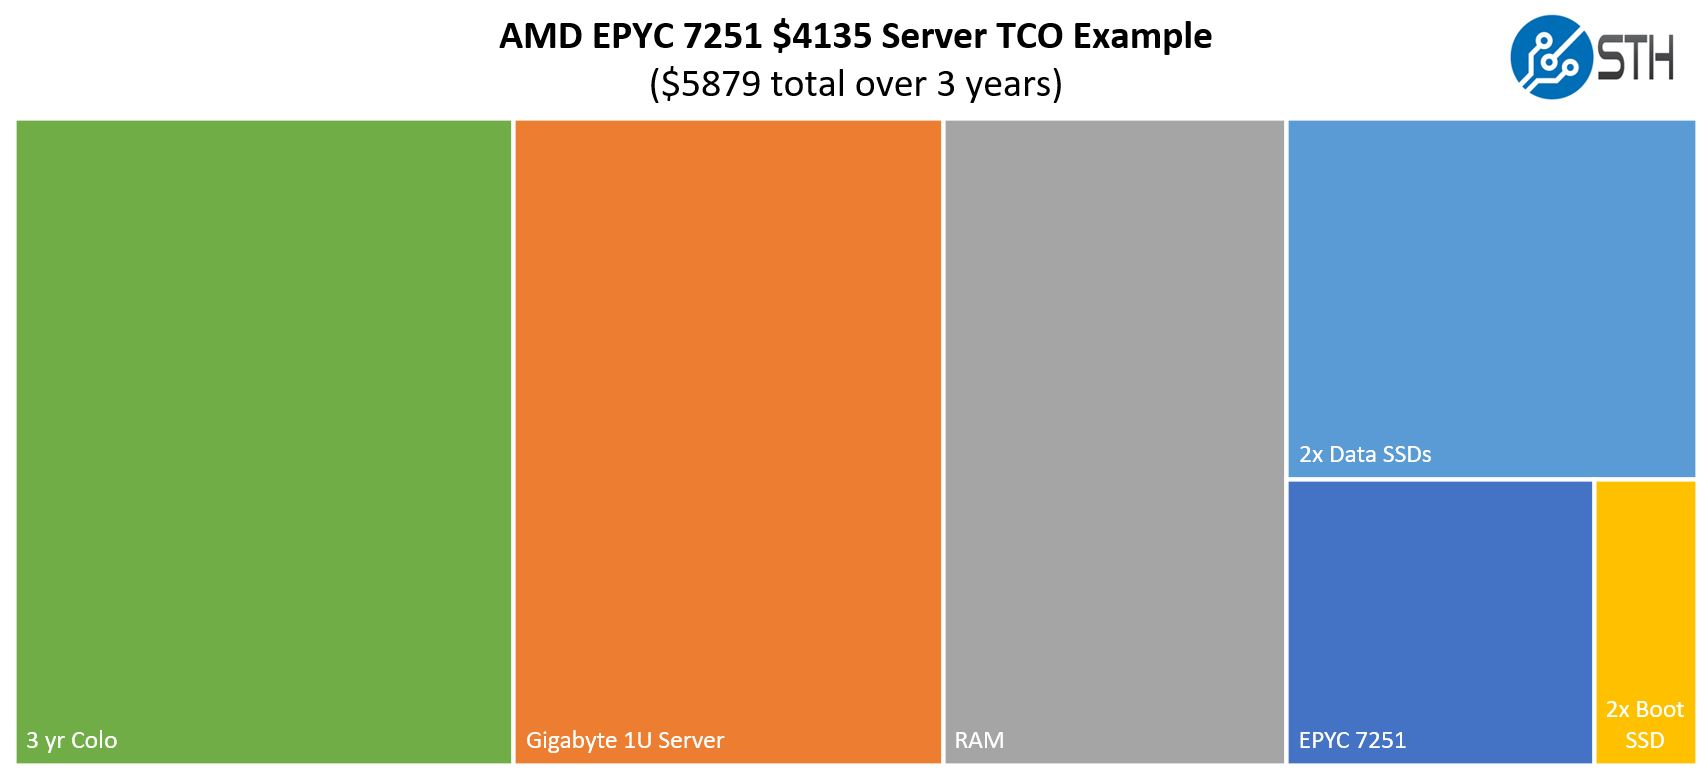 AMD EPYC 7251 TCO Example Low End